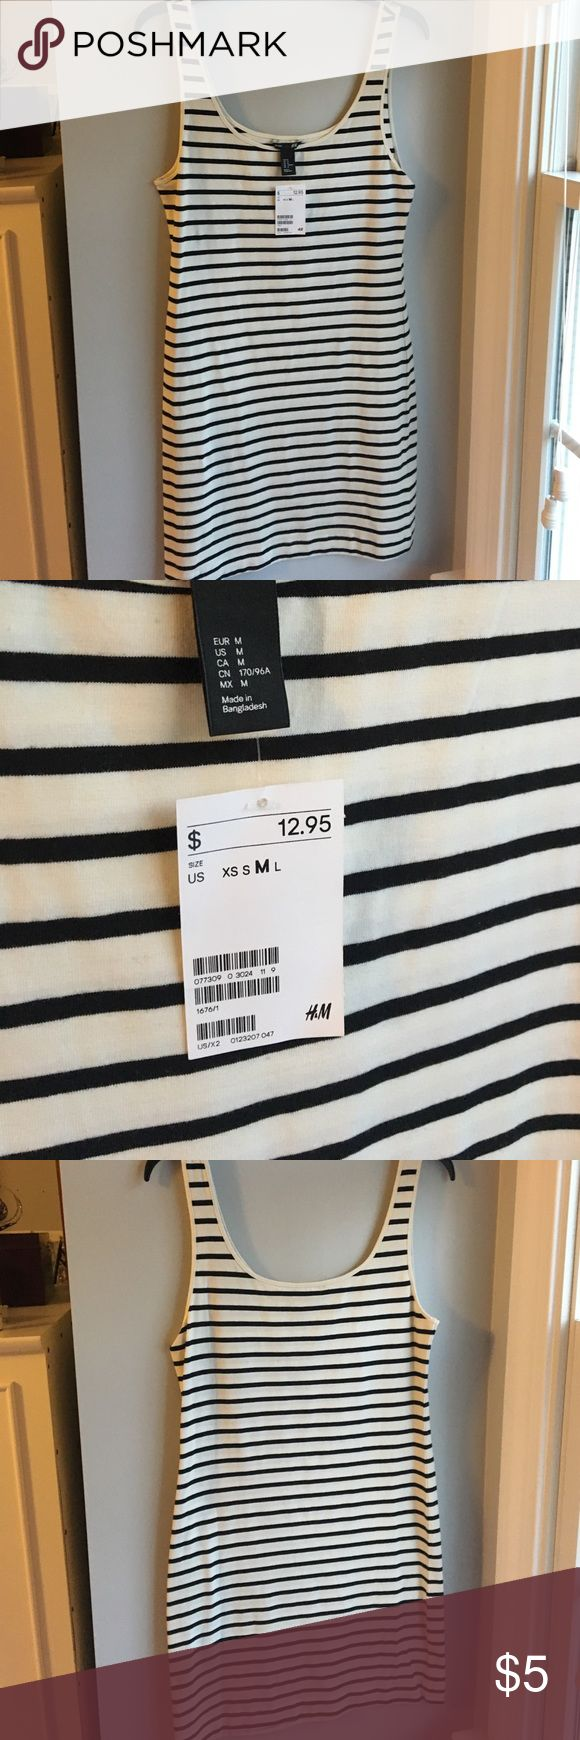 Striped Bodycon Dress Black and white striped Bodycon dress from H&M. NWT H&M Dresses Mini